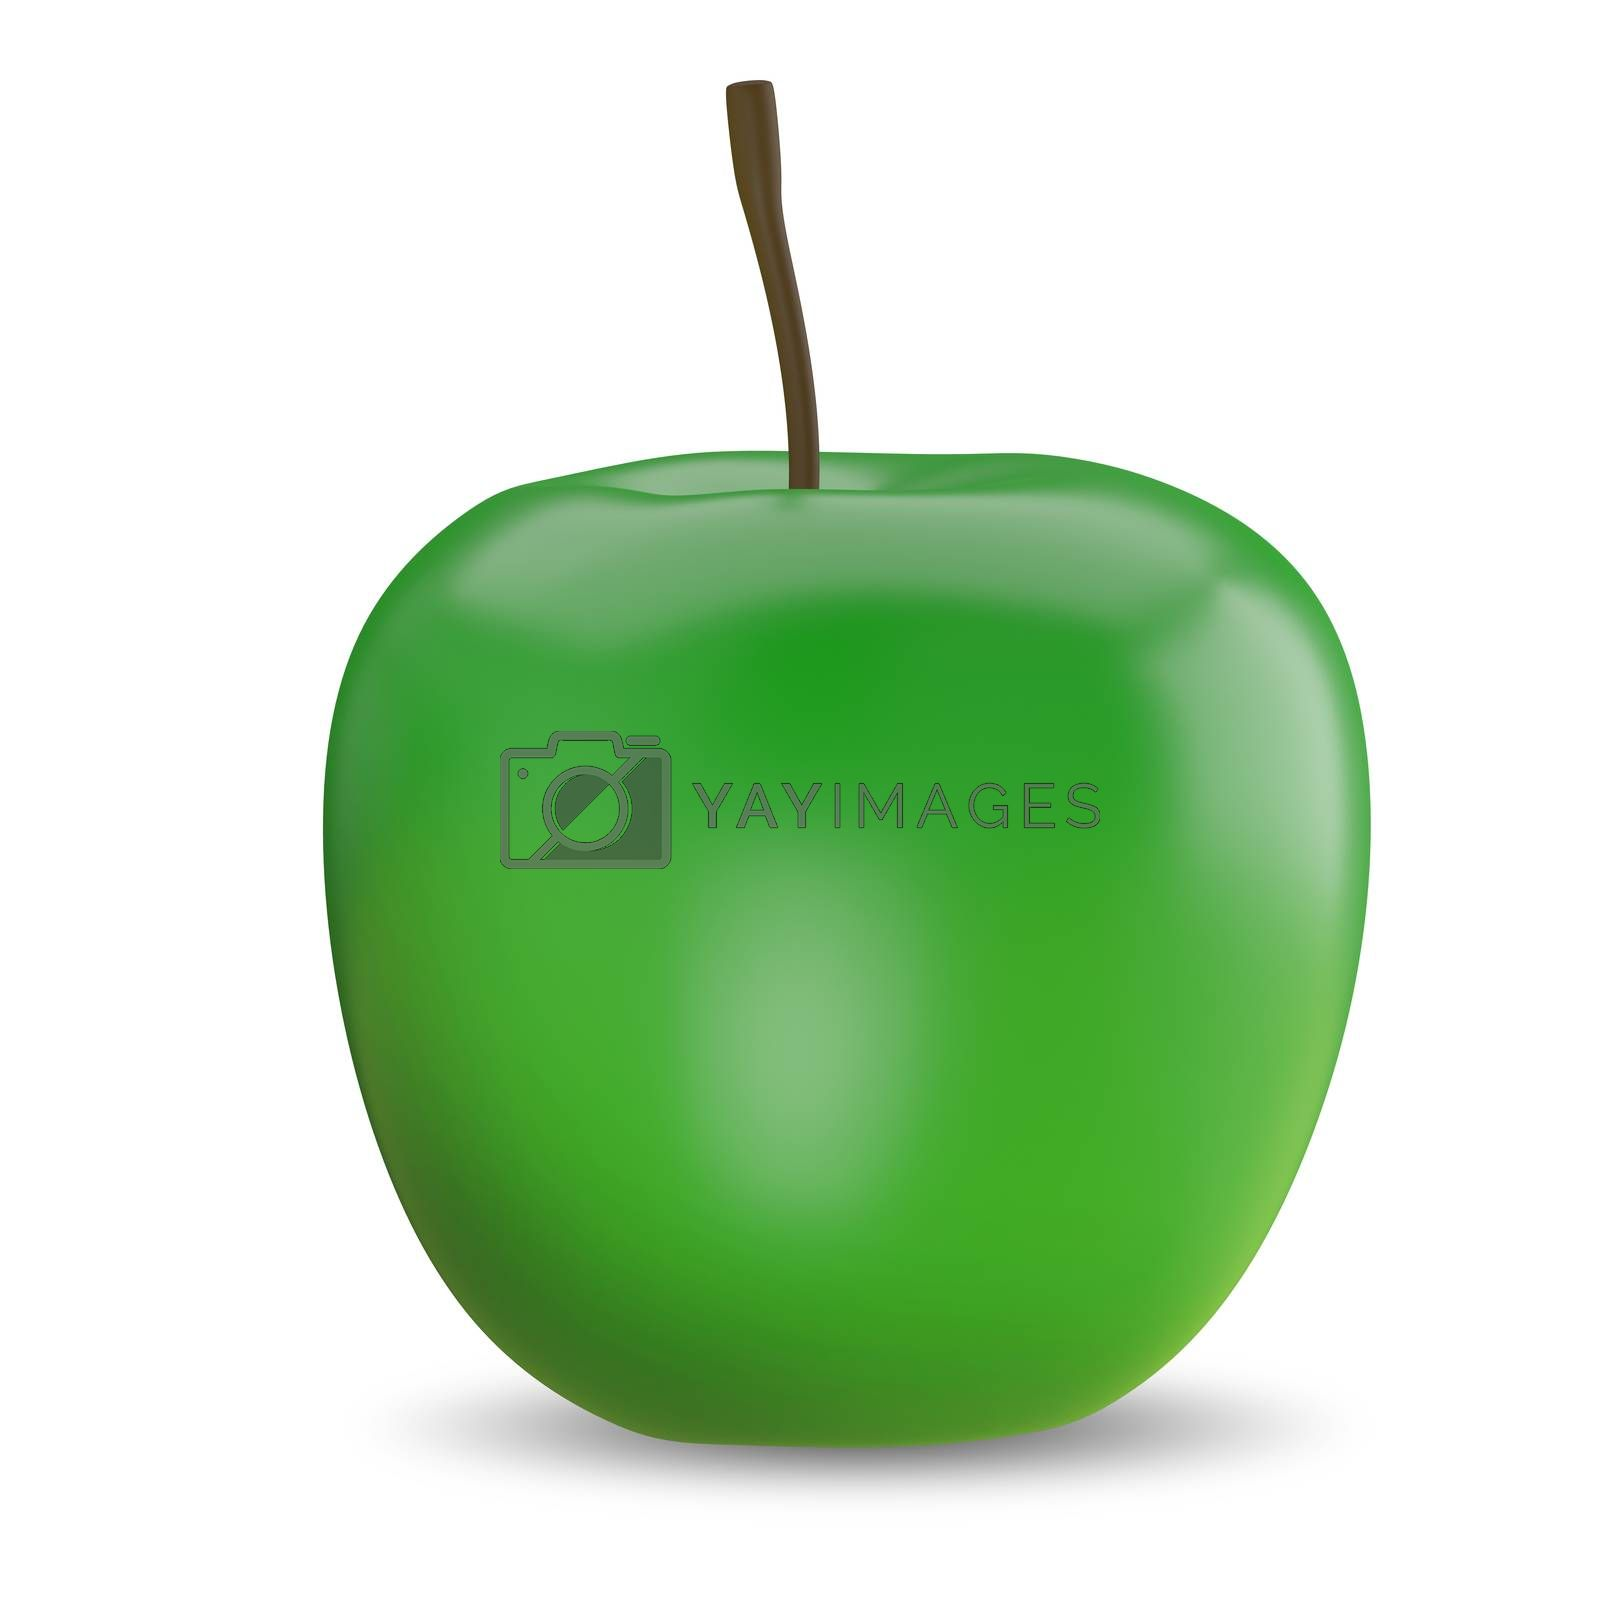 3D Illustration of a Green Apple on a White Background